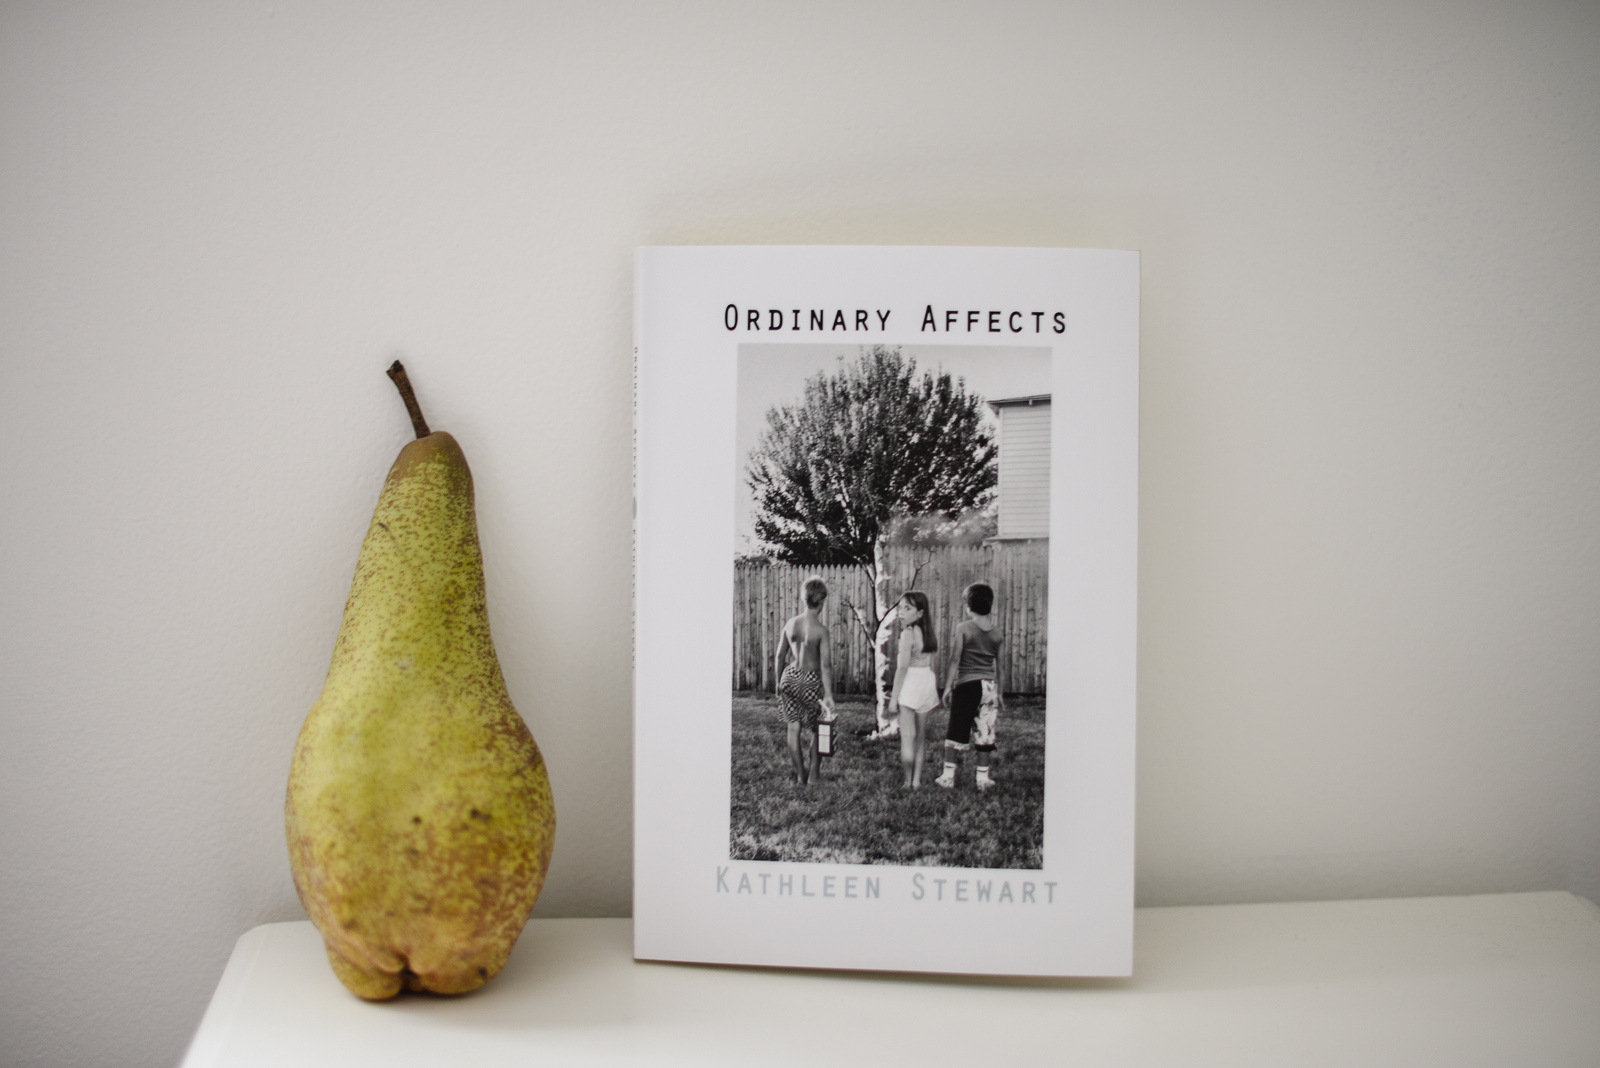 book and pear